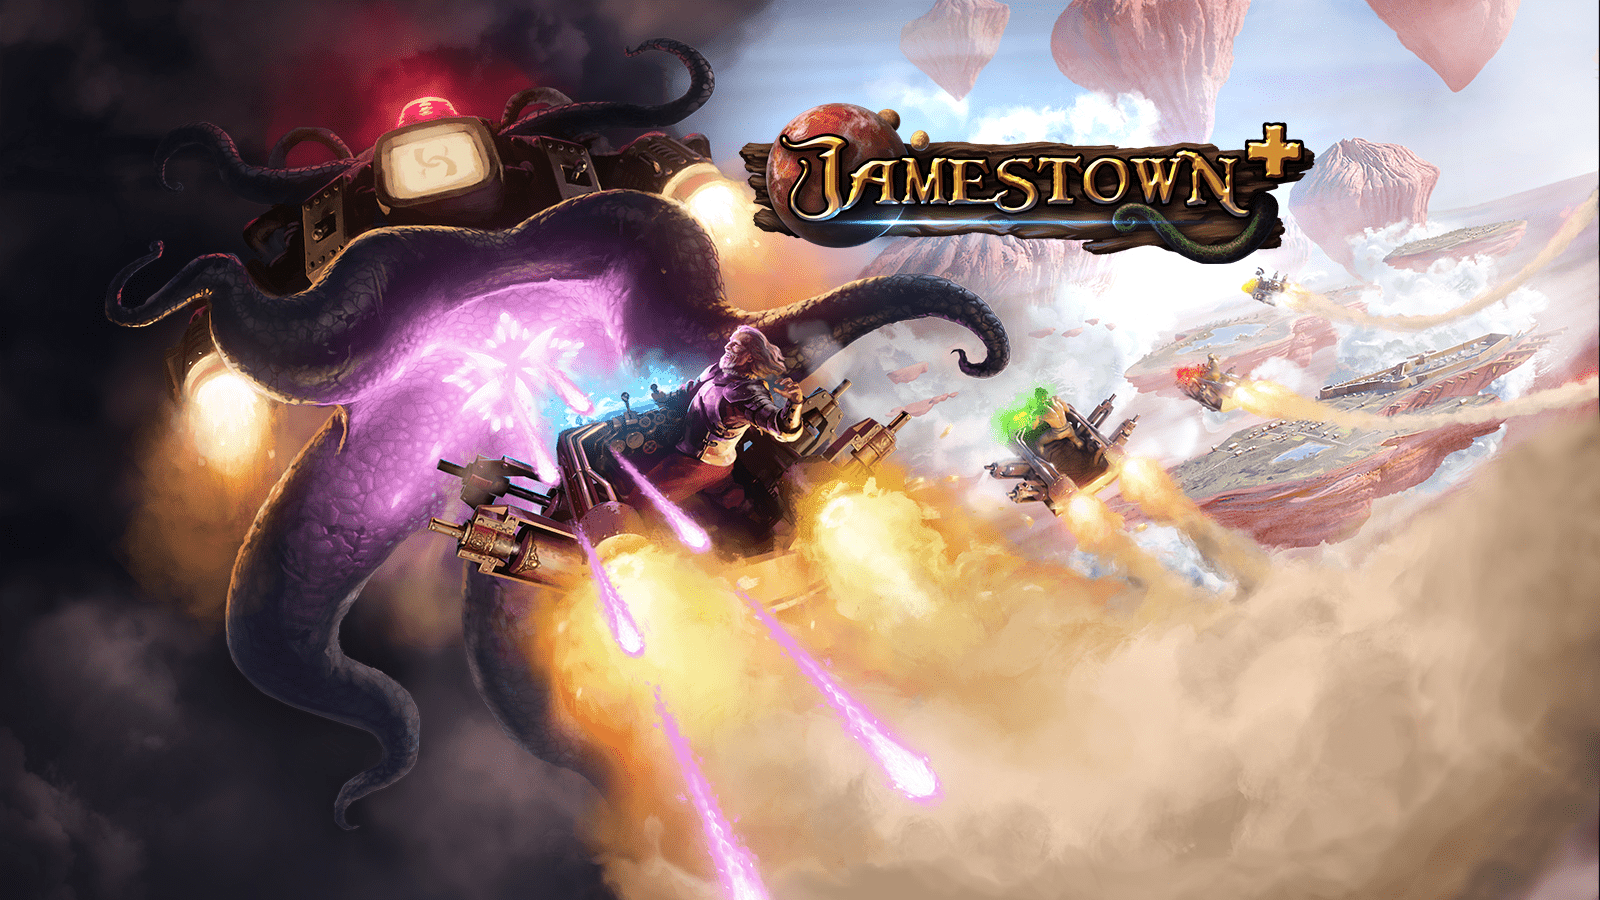 Space Really Is The Final Frontier In Jamestown+, Coming Soon To Switch